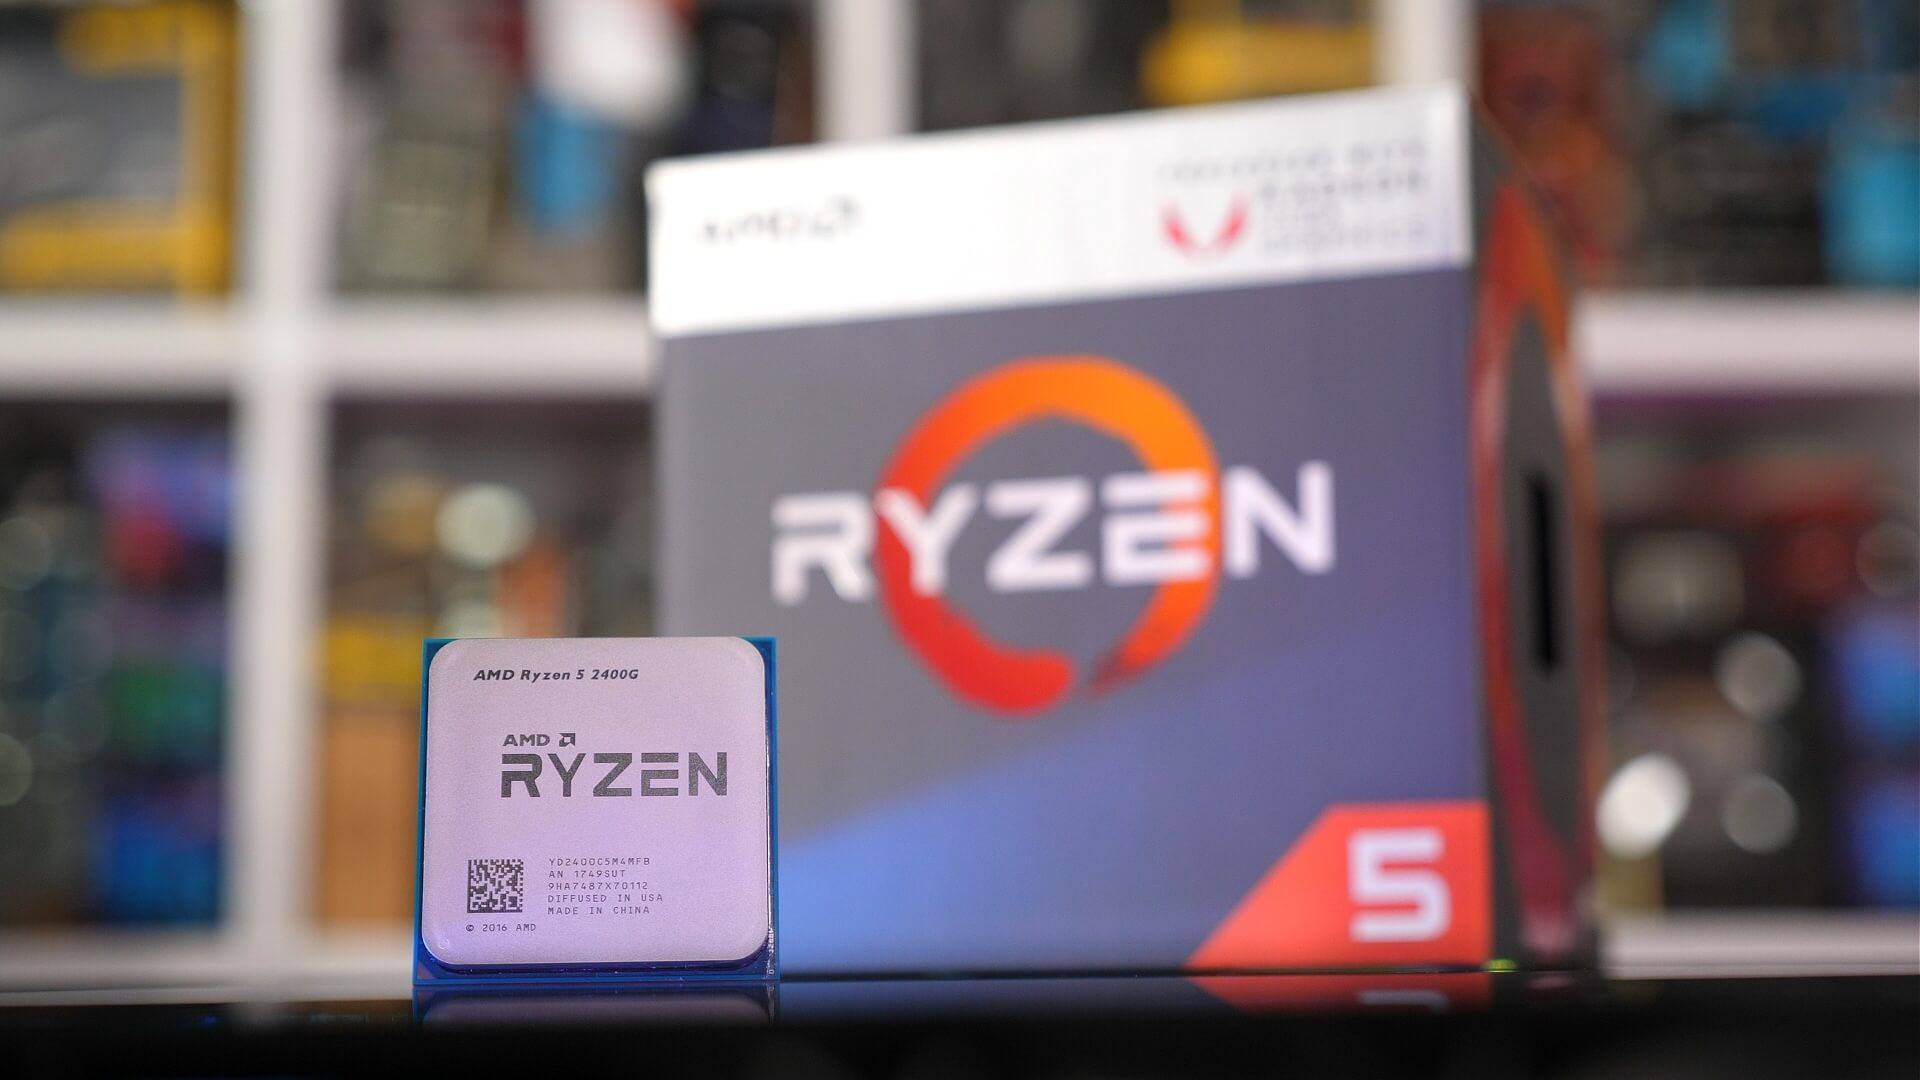 Ryzen Cpu Vega Graphics On A Chip Amd 5 2400g 3 With Radeon Rx 11 Making These Chips Special Is The Integration Of For Budget Desktop Pcs